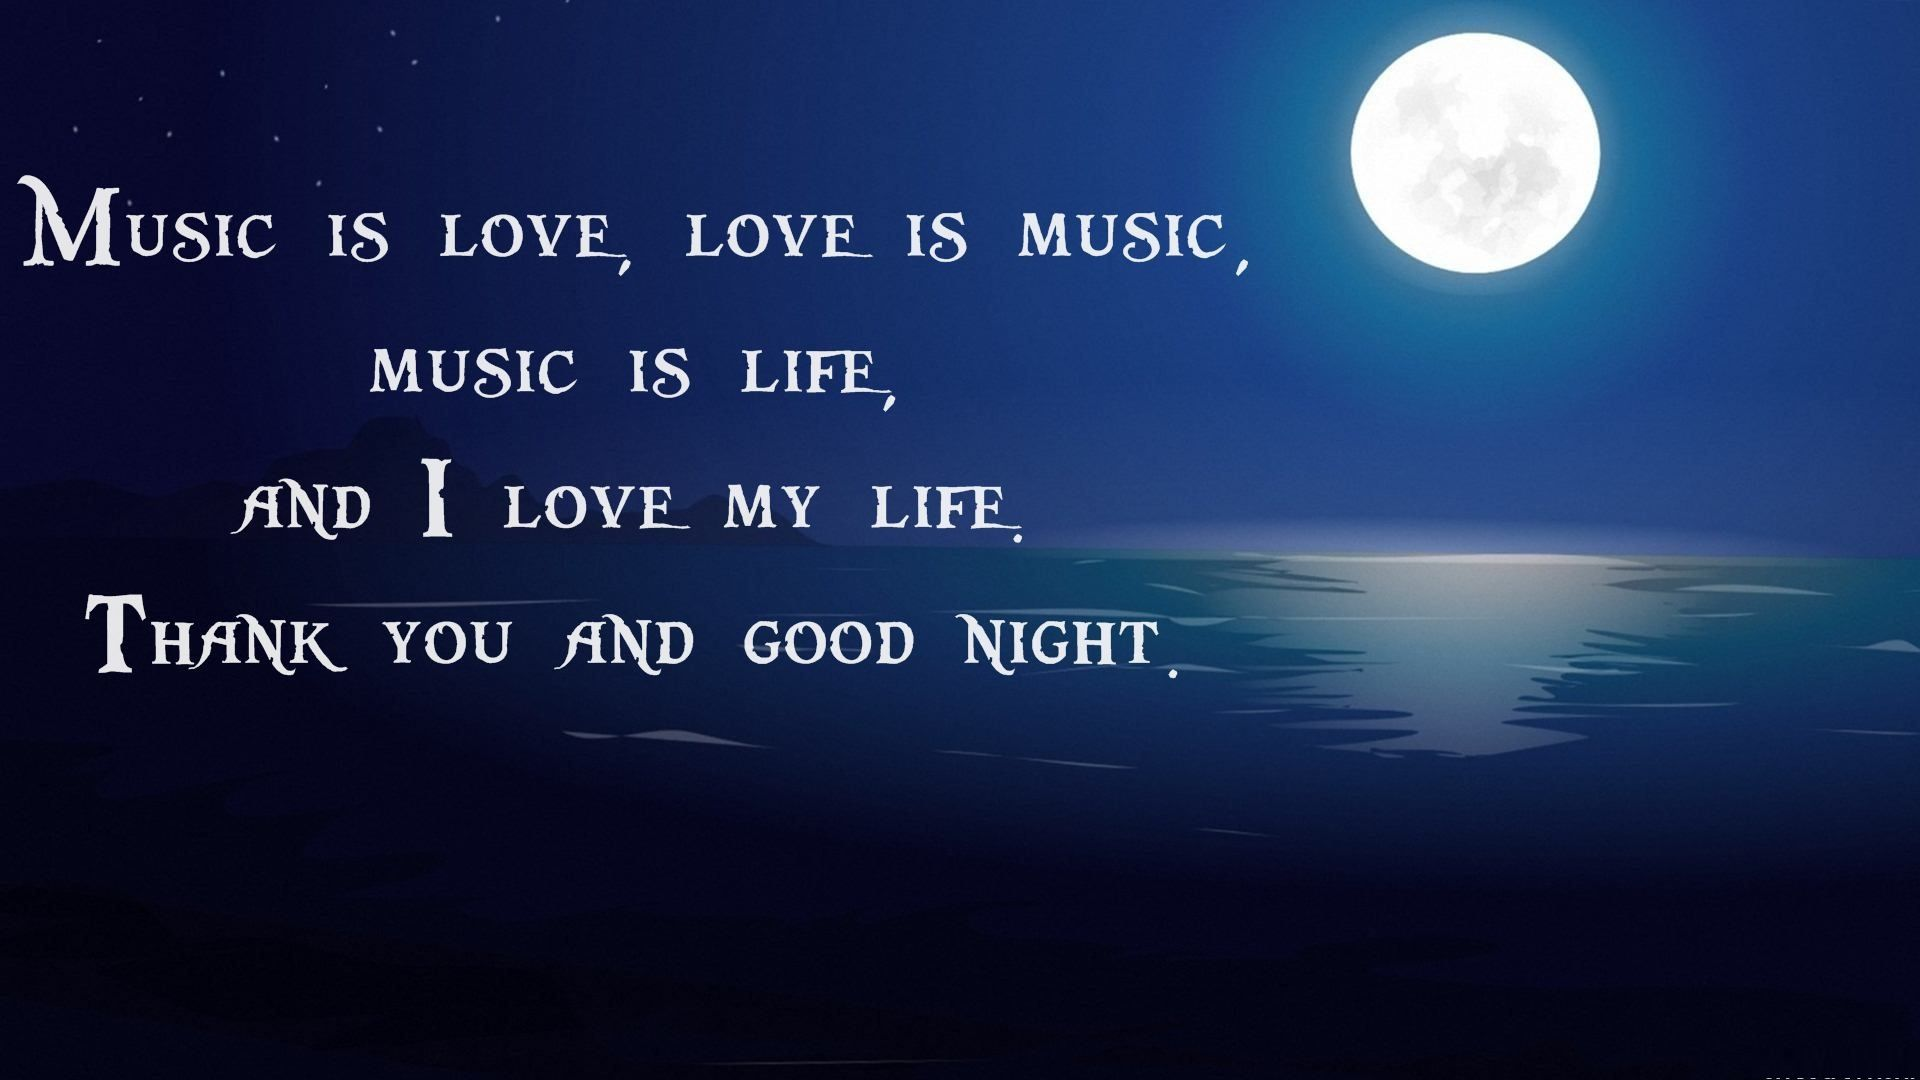 Good Night Images Hd With Quotes - HD Wallpaper